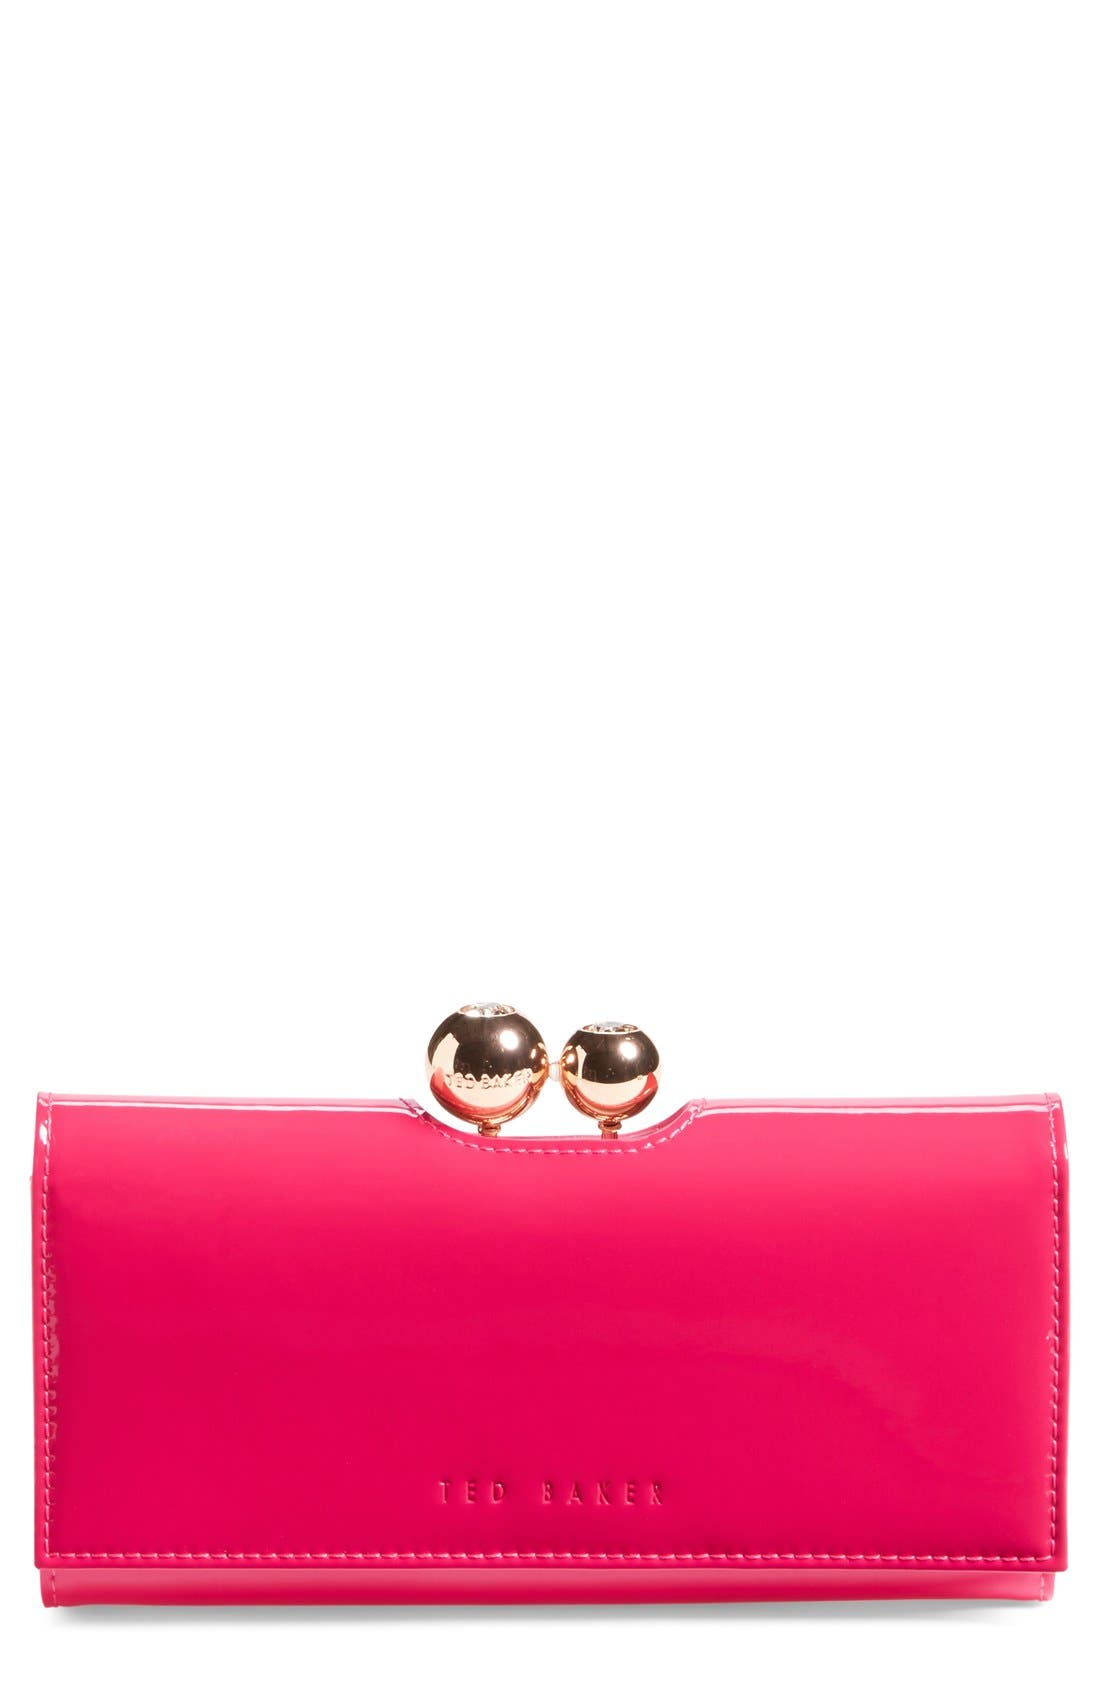 Alternate Image 1 Selected - Ted Baker London 'Odd Bobble' Patent Leather Matinee Wallet